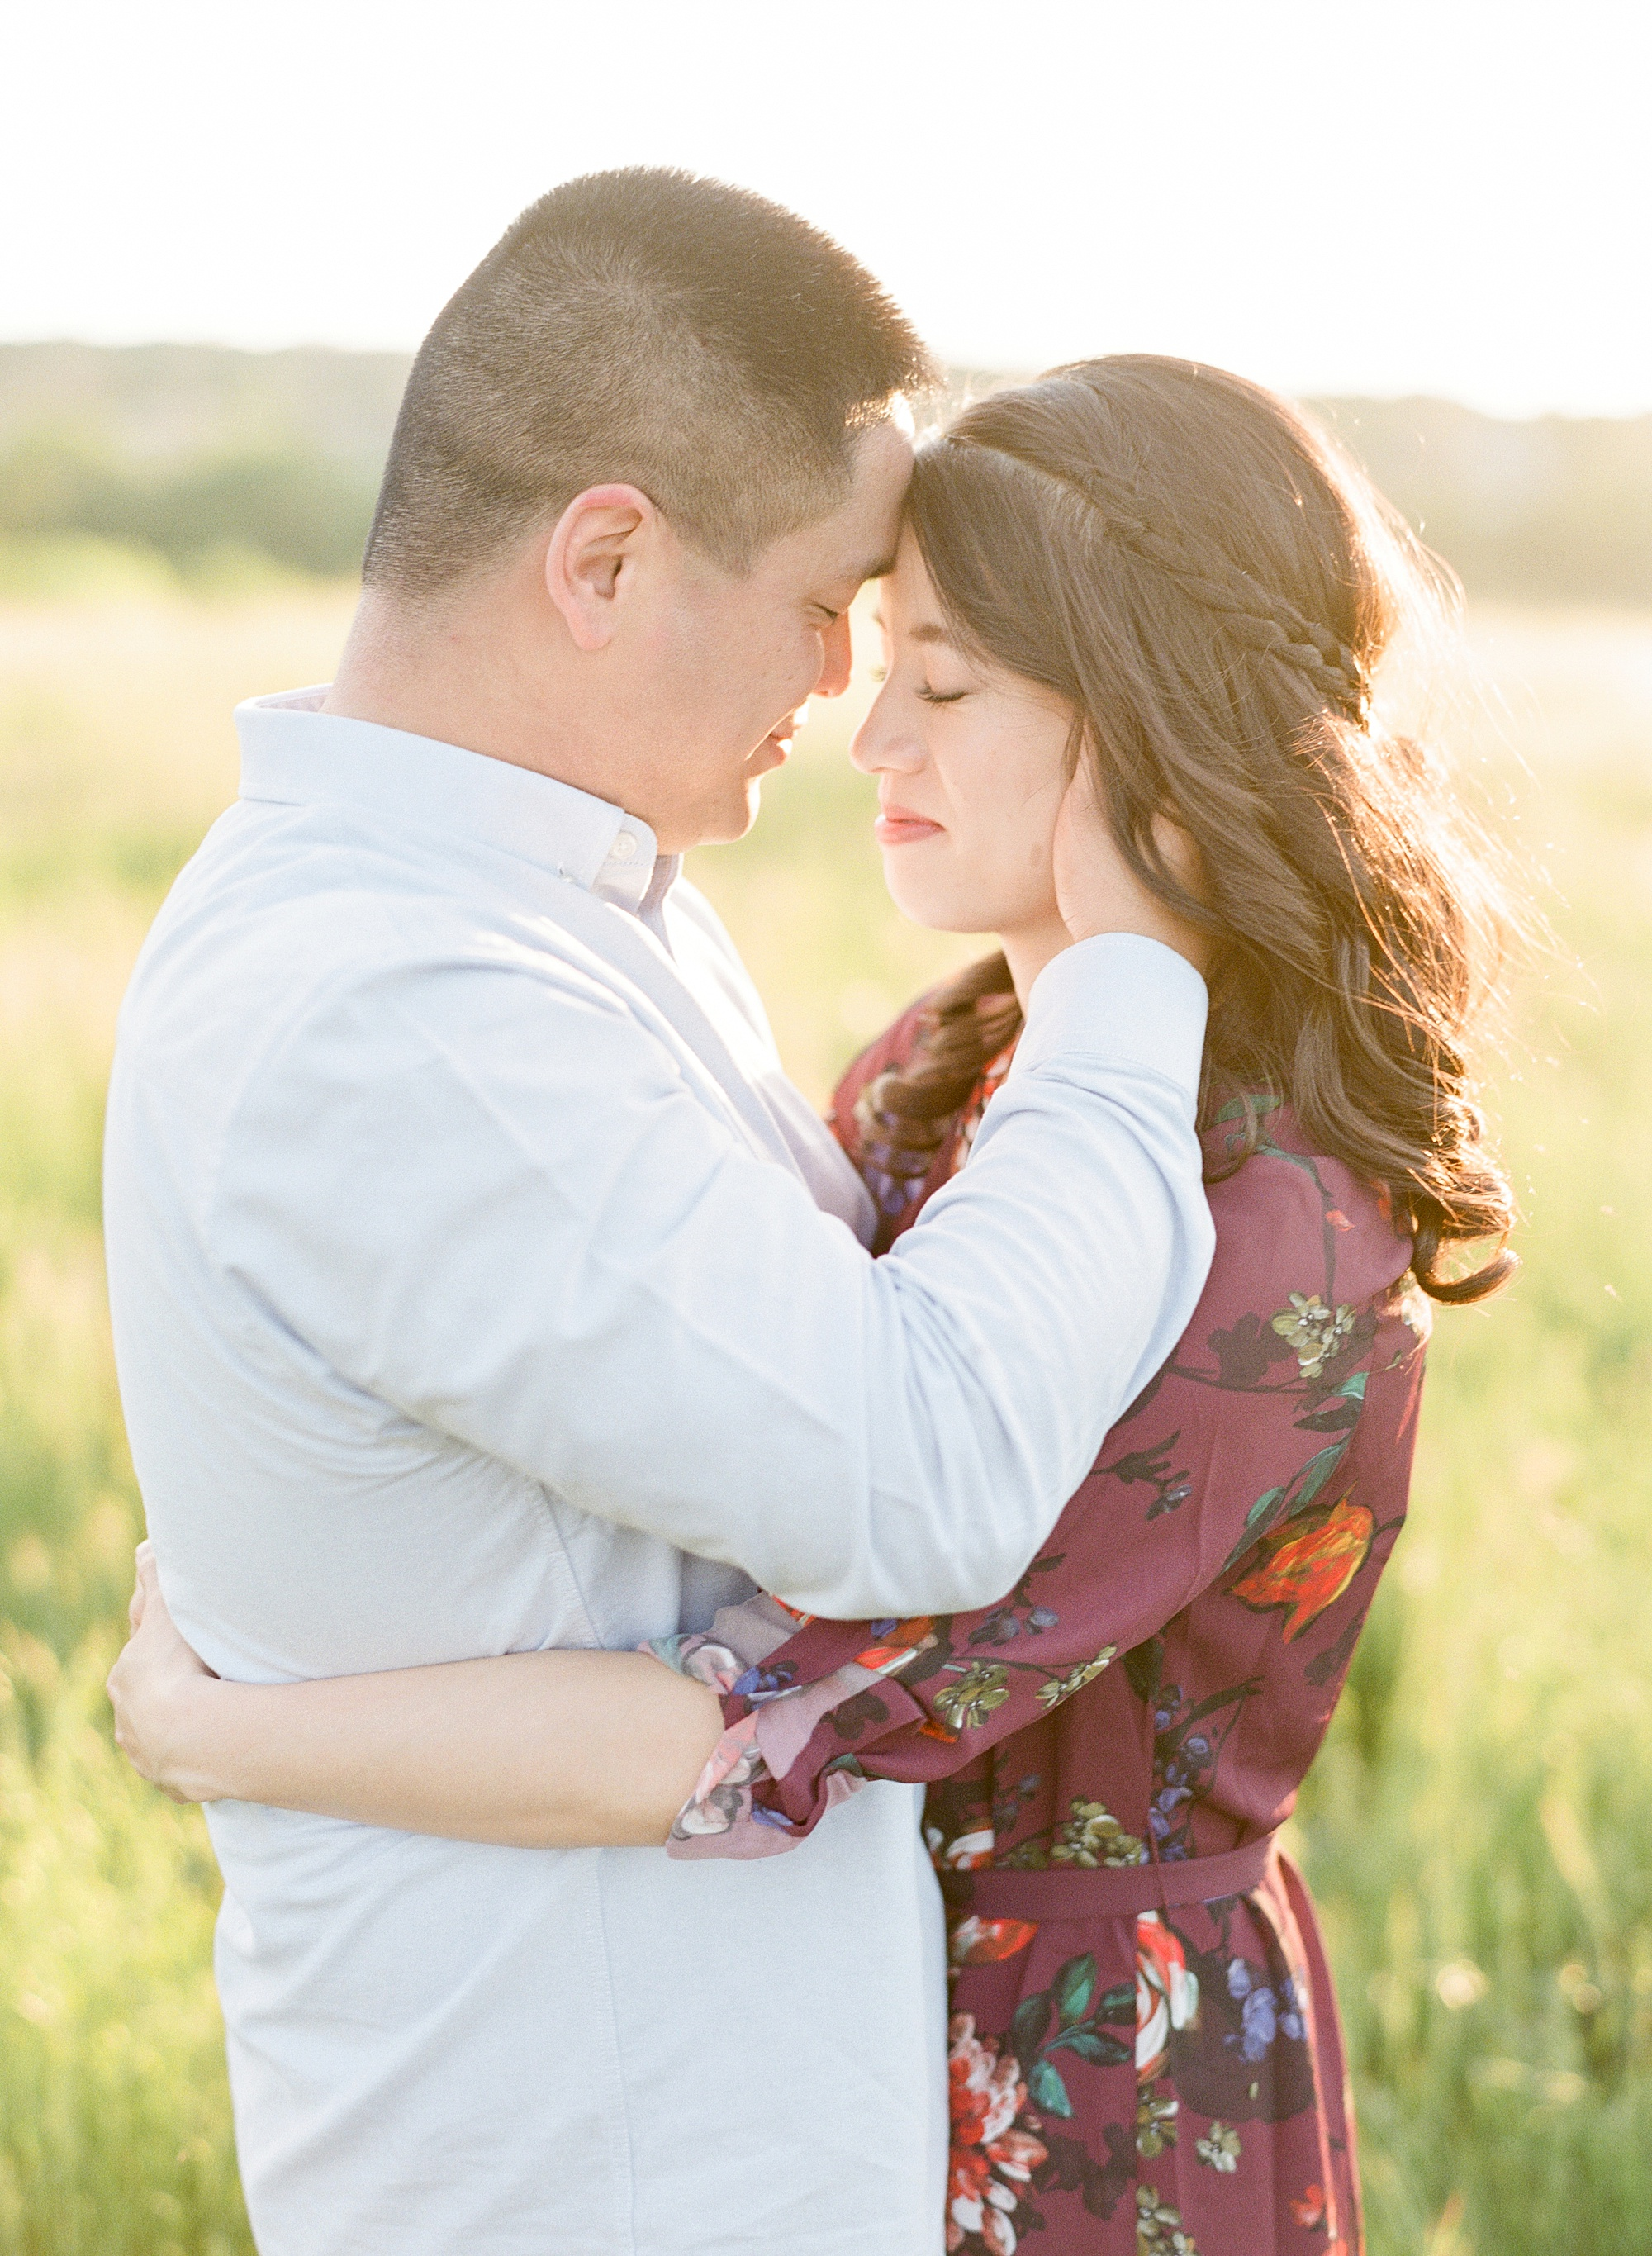 El Dorado Hills Engagement Session - Wendy and Danny - Ashley Baumgartner - Sacramento Wedding Photographer and Sacramento Wedding Photography - Bay Area Wedding Photographer_0013.jpg